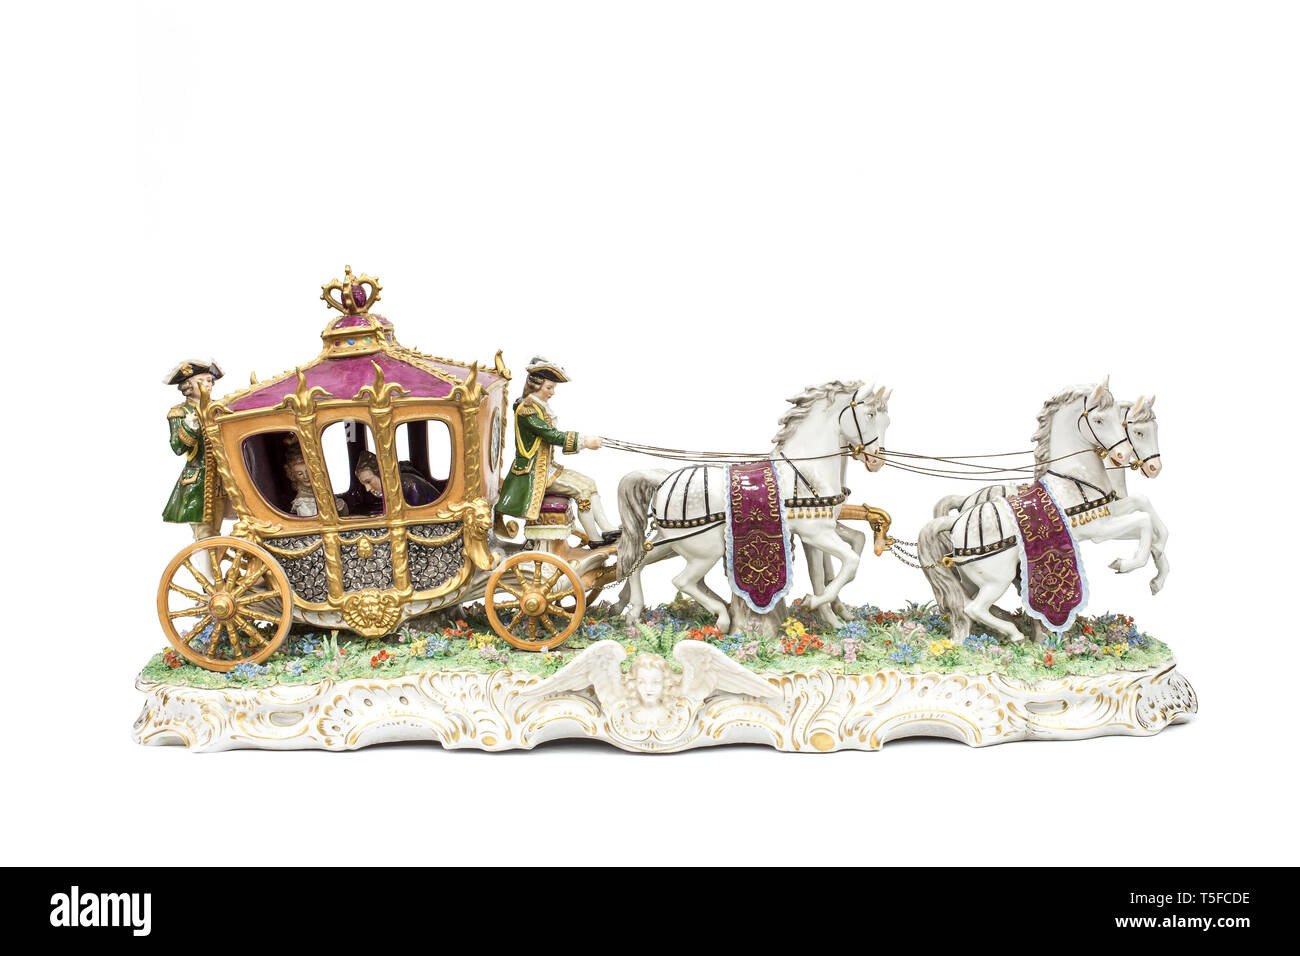 porcelain figurines of horse carriage on white background (with clipping path). Stock Photo